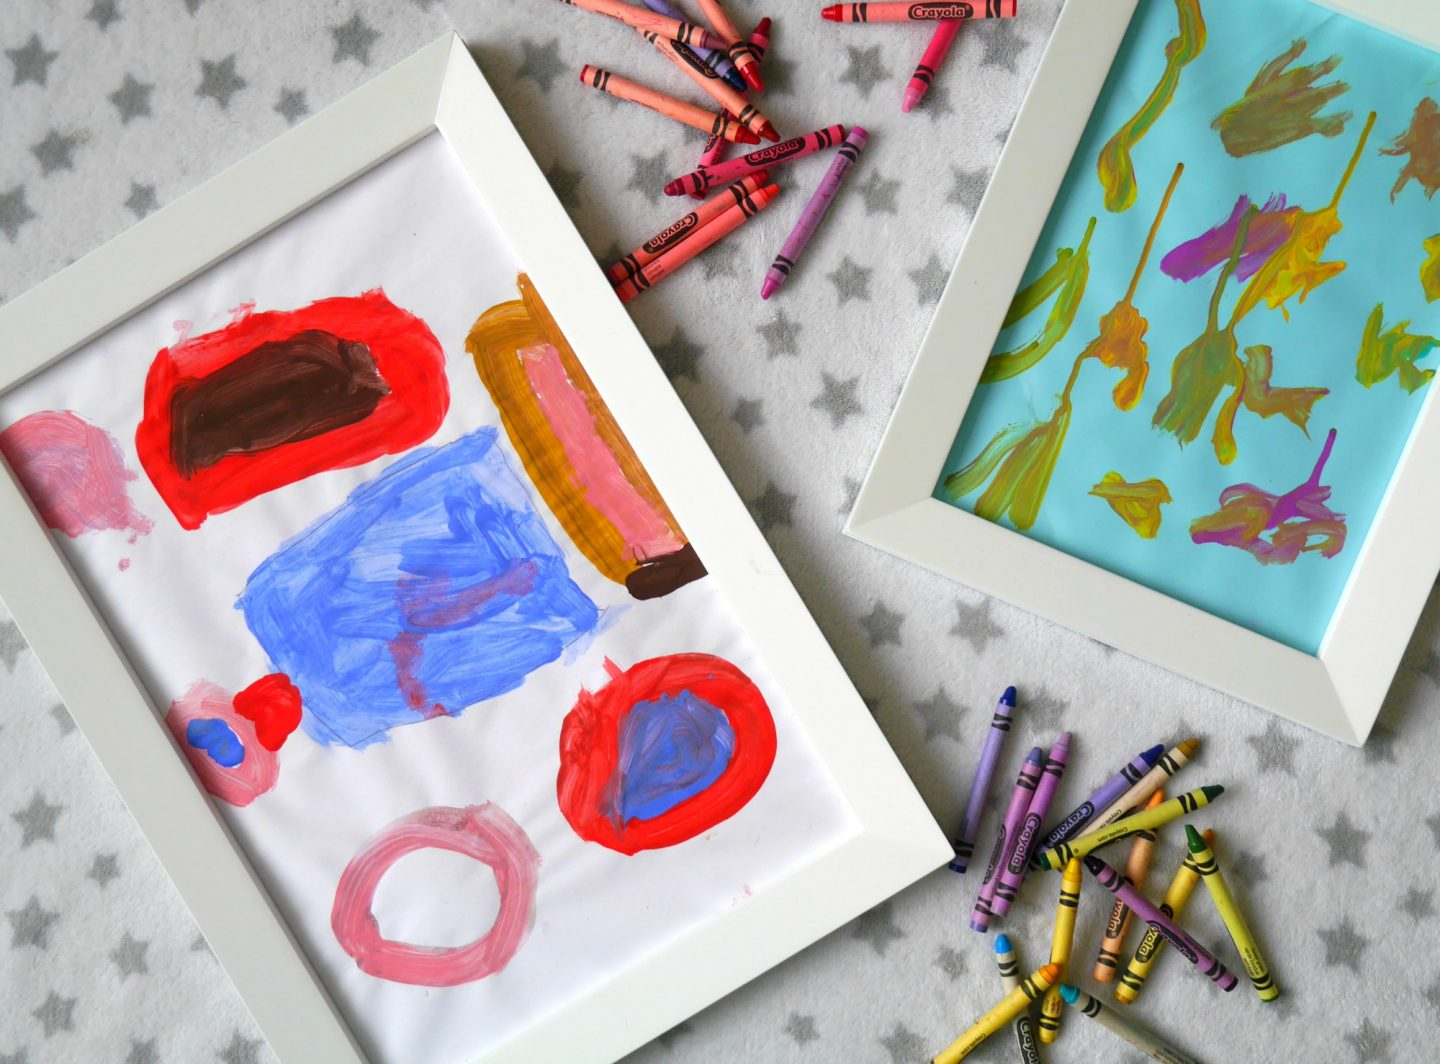 Magnetic picture frames from GLTC to display children's art